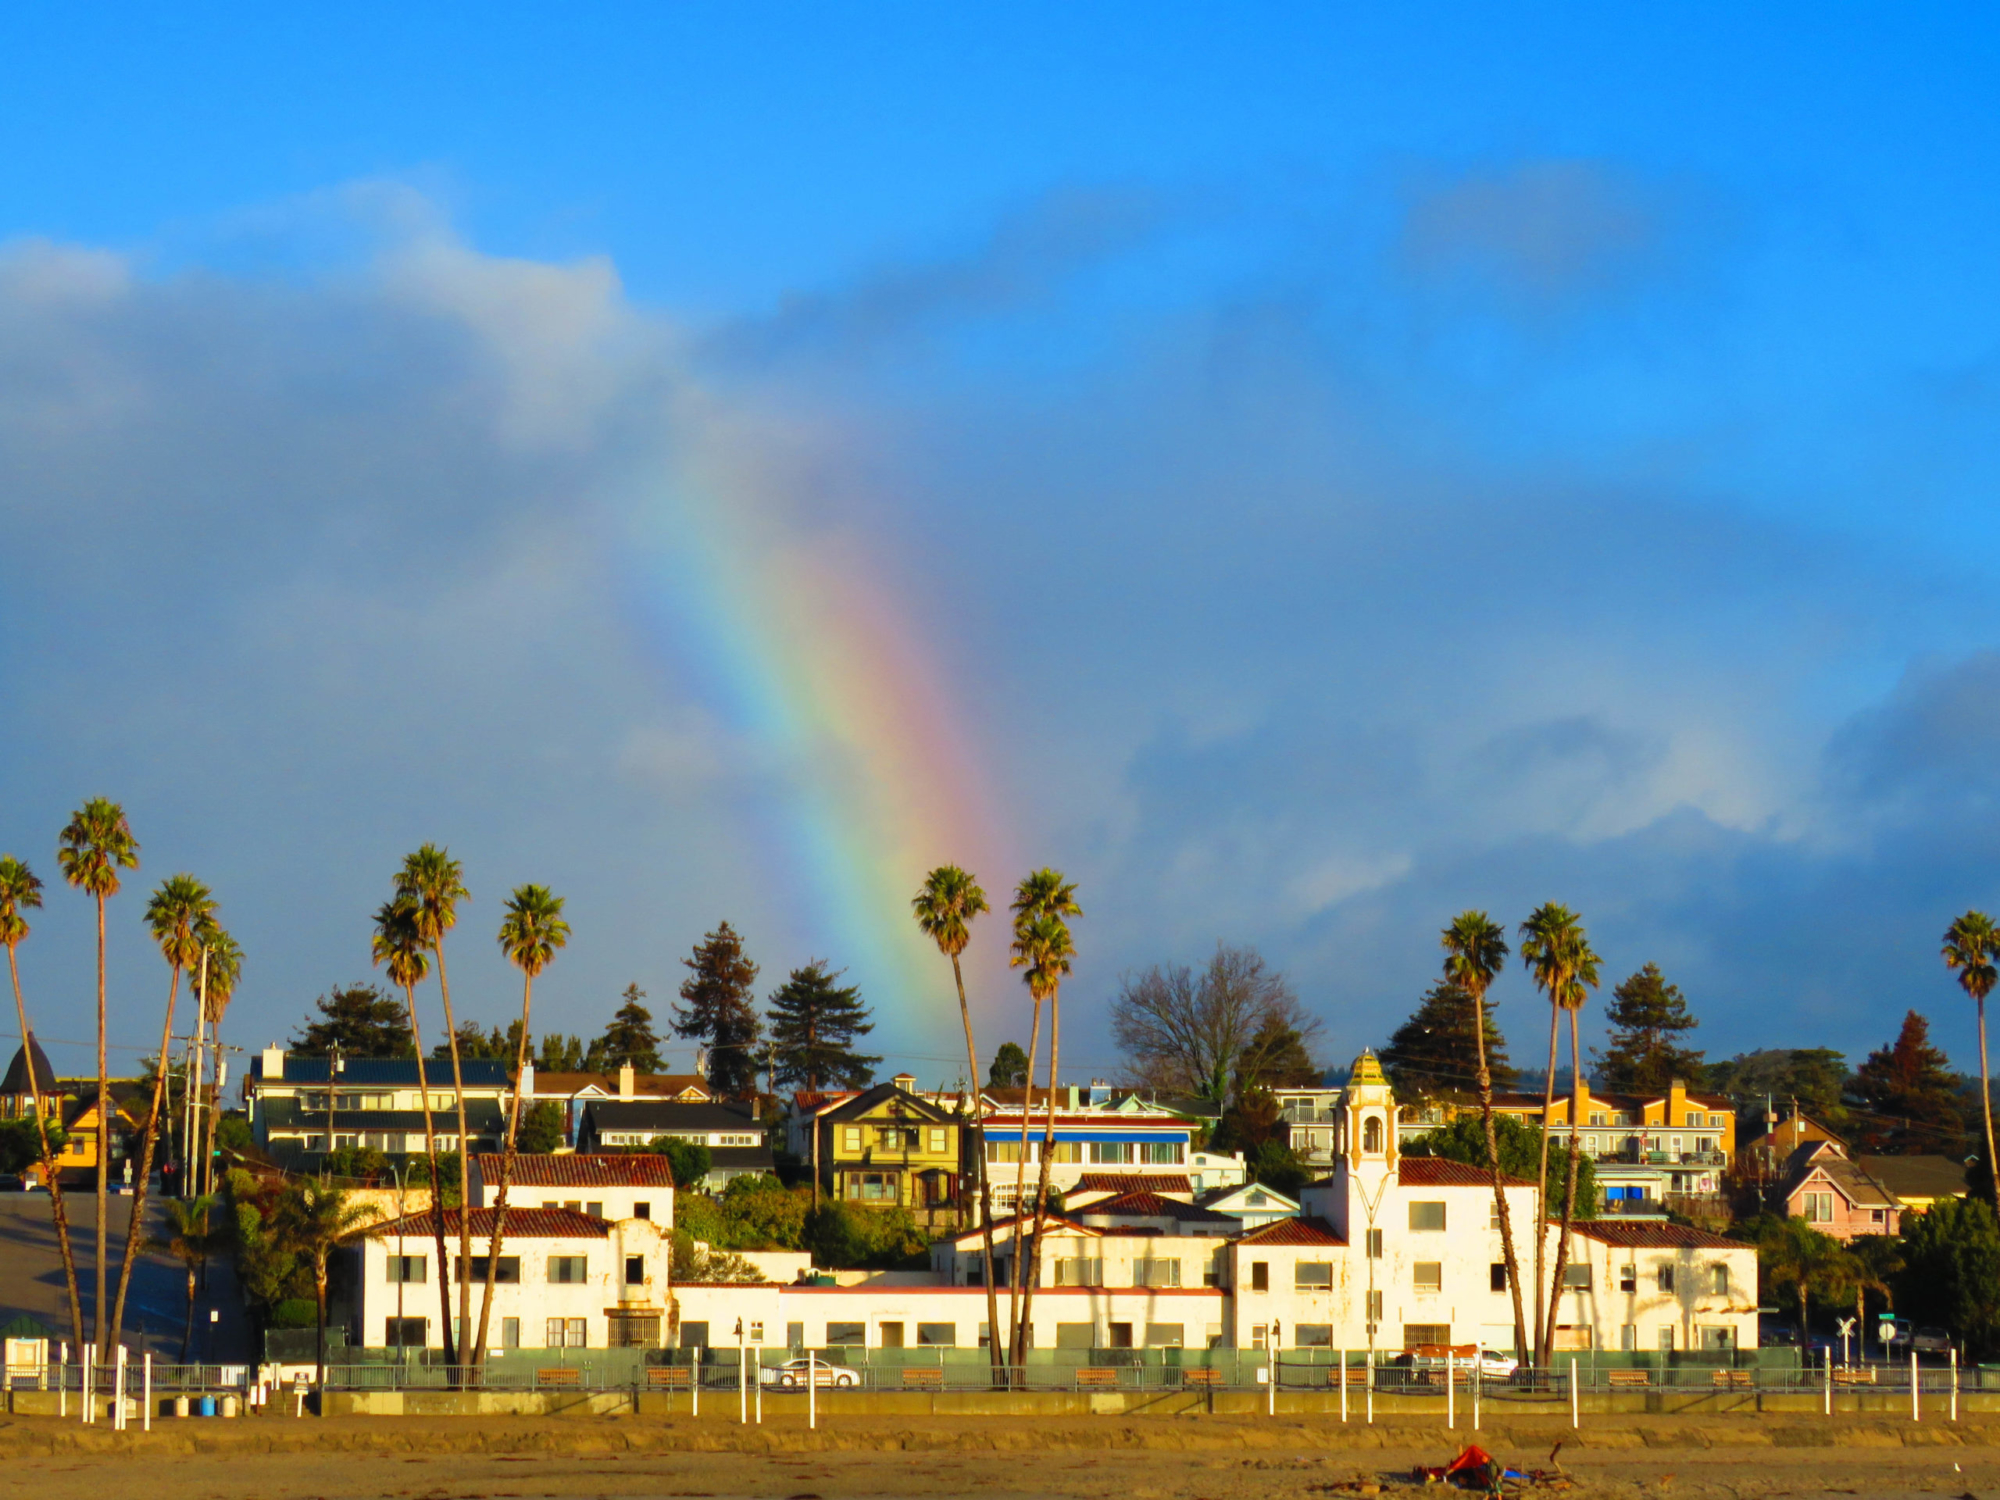 A skyline of palm trees and a white complex with a rainbow leading down towards the tower.